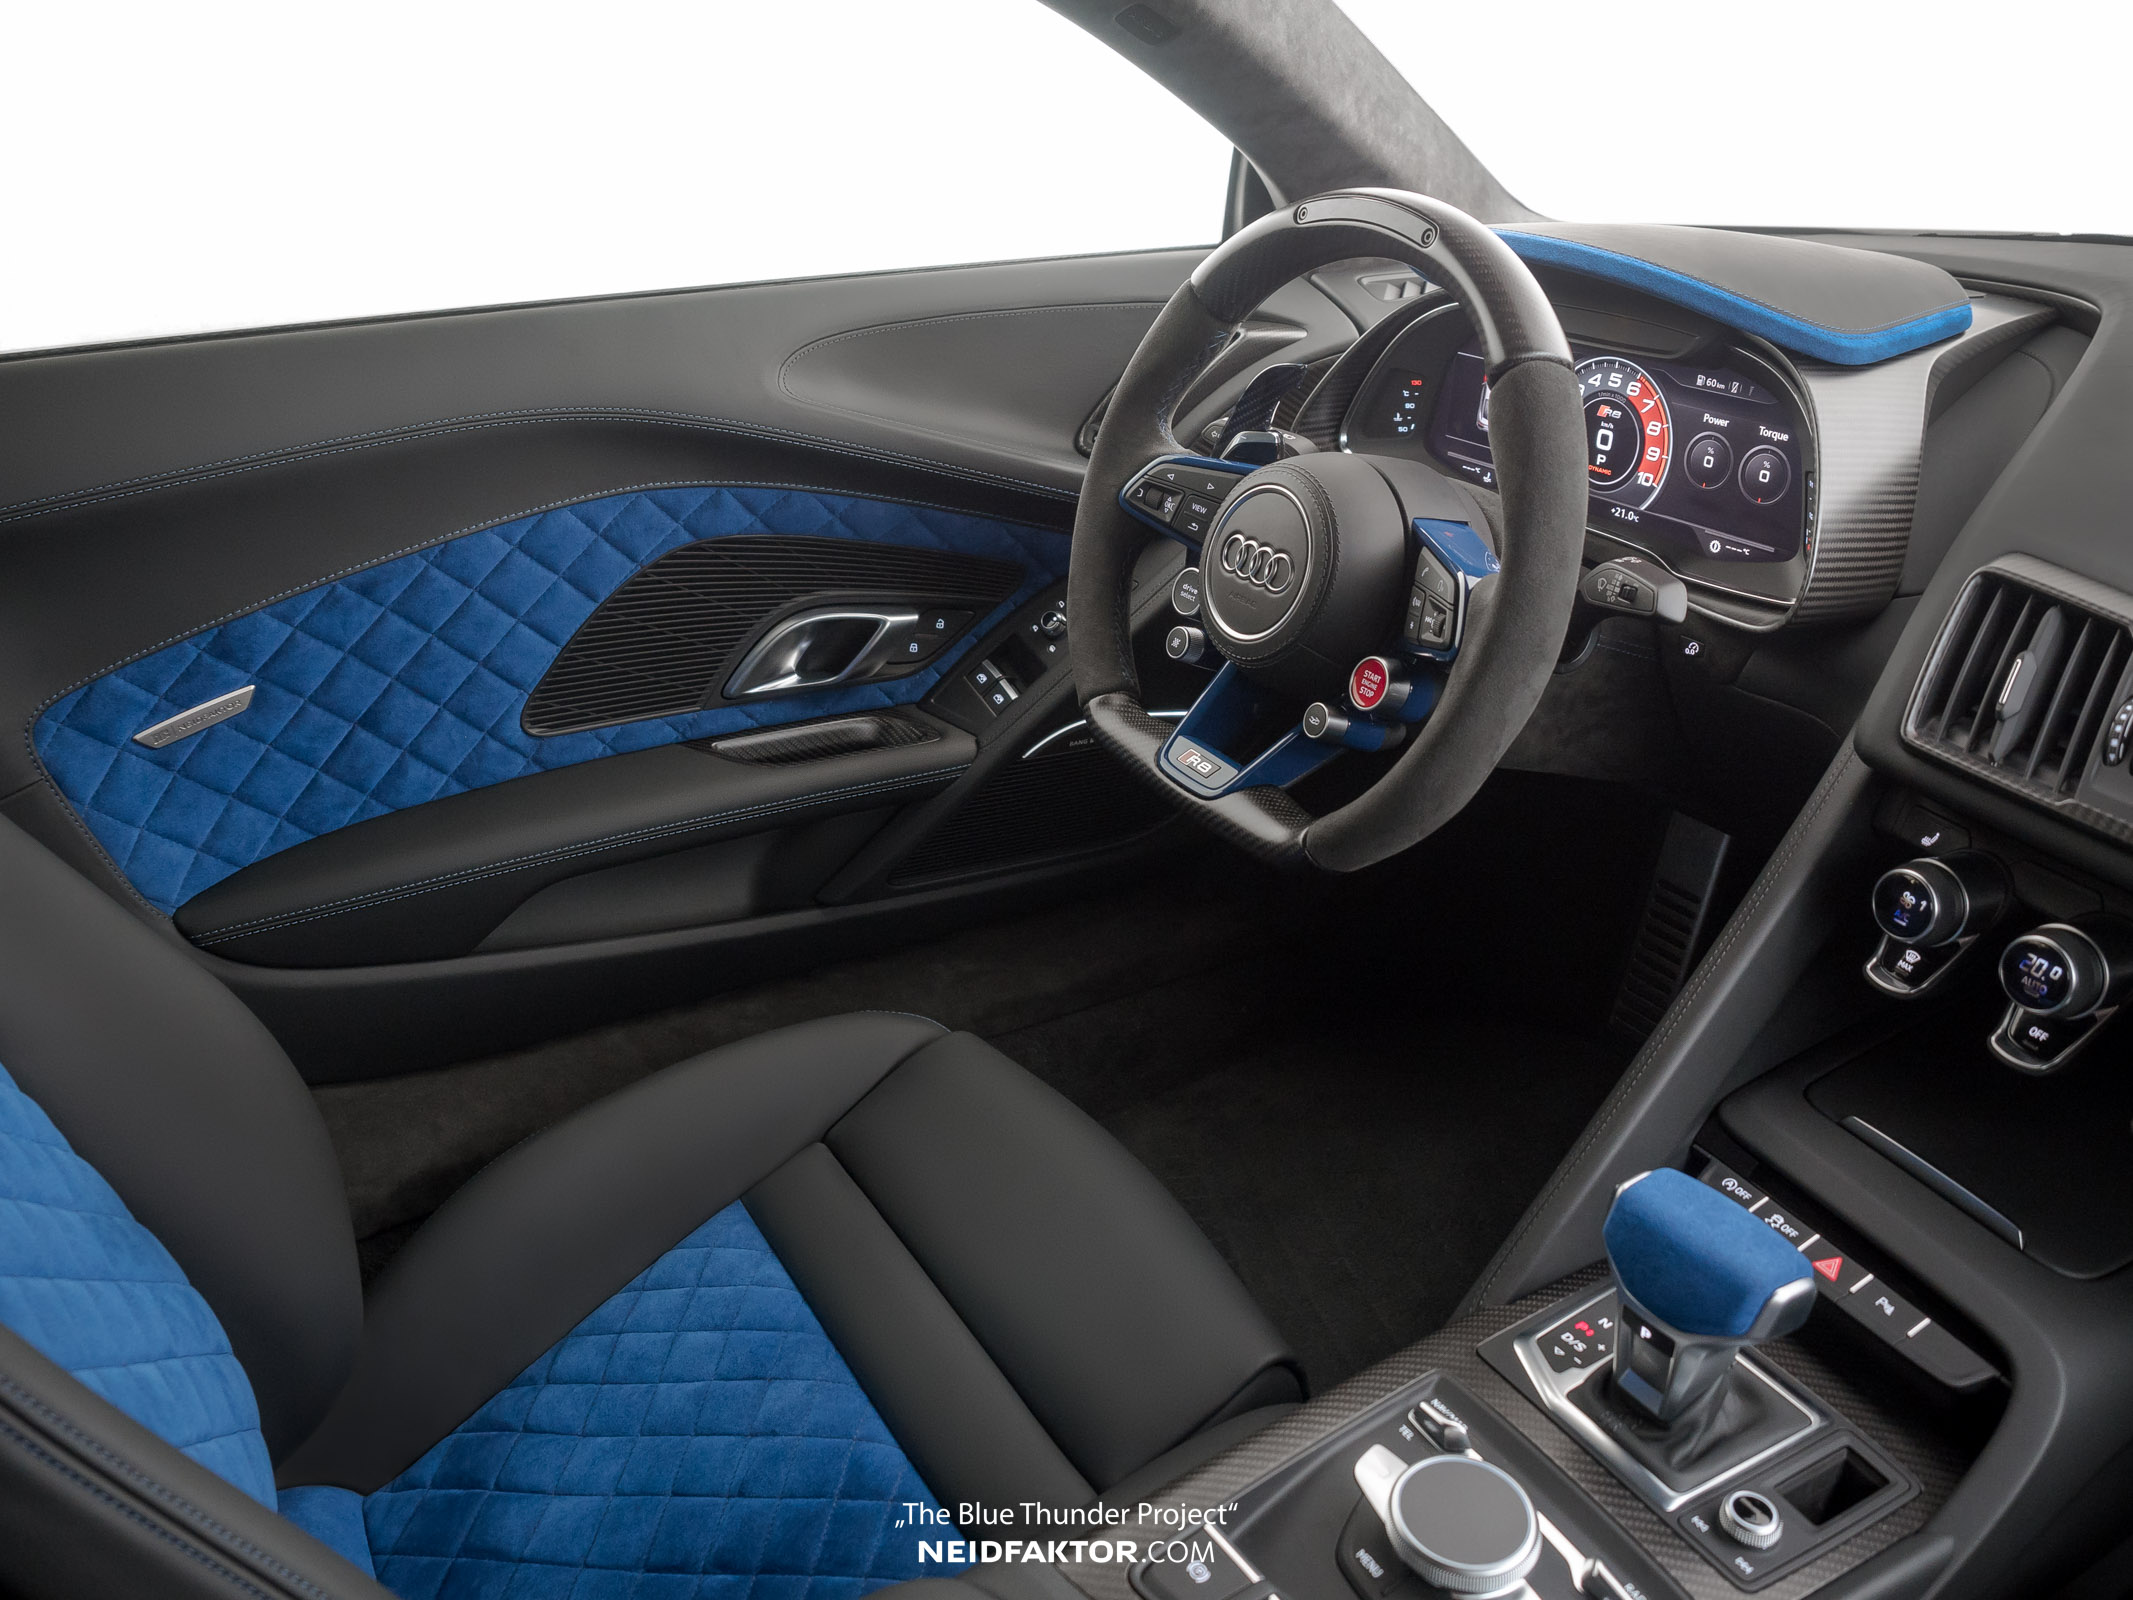 https://s1.cdn.autoevolution.com/images/news/audi-r8-v10-plus-blue-thunder-interior-by-neidfaktor-looks-like-the-rs2-113926_1.jpg